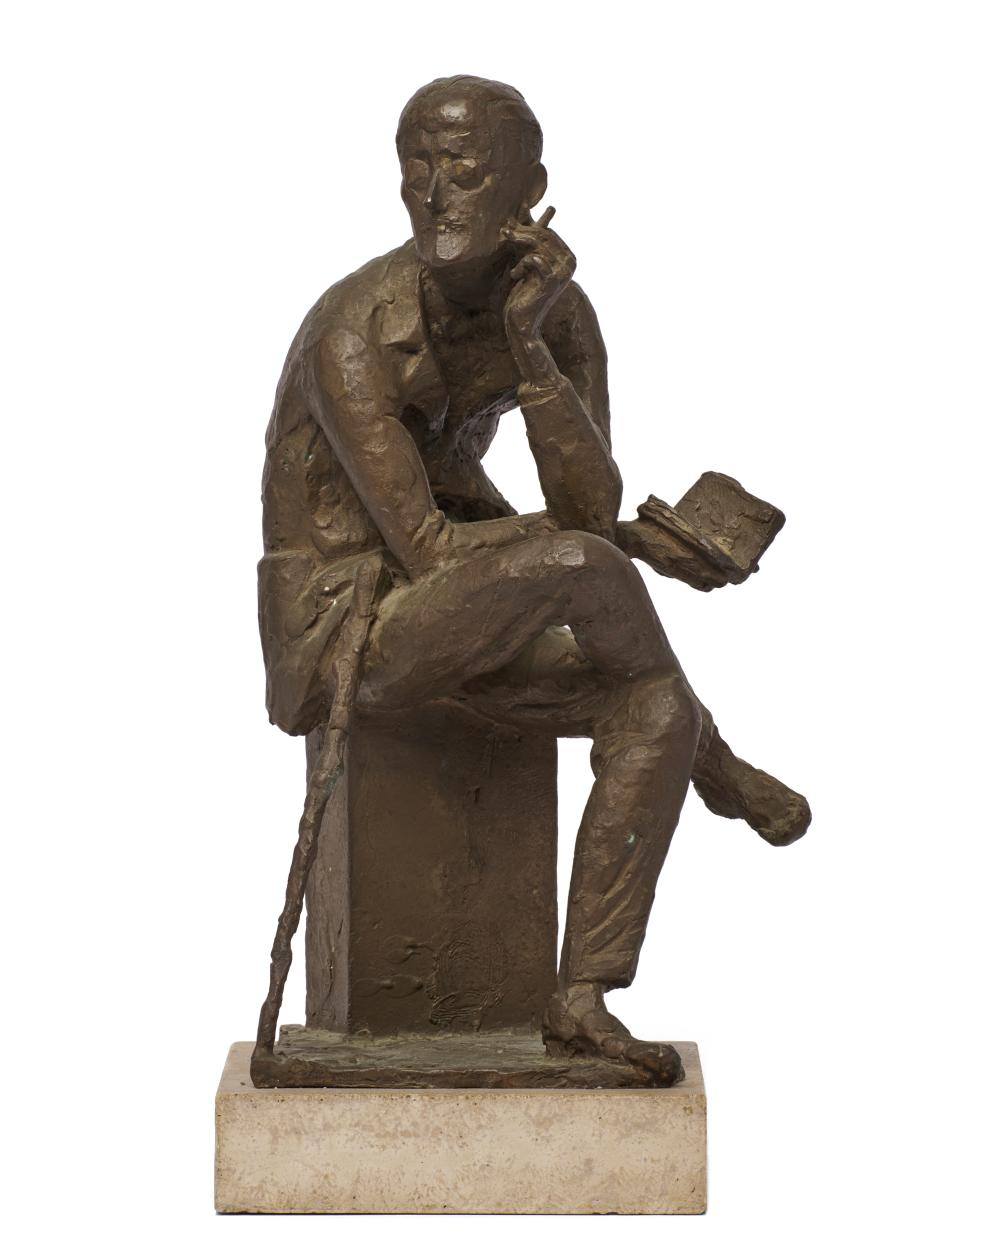 MILTON ELTING HEBALD, (American, 1917-2015), James Joyce, 1966, bronze, height: 16 1/2 in., mounted on a 2 in. base, overall height: 18 1/2 in.